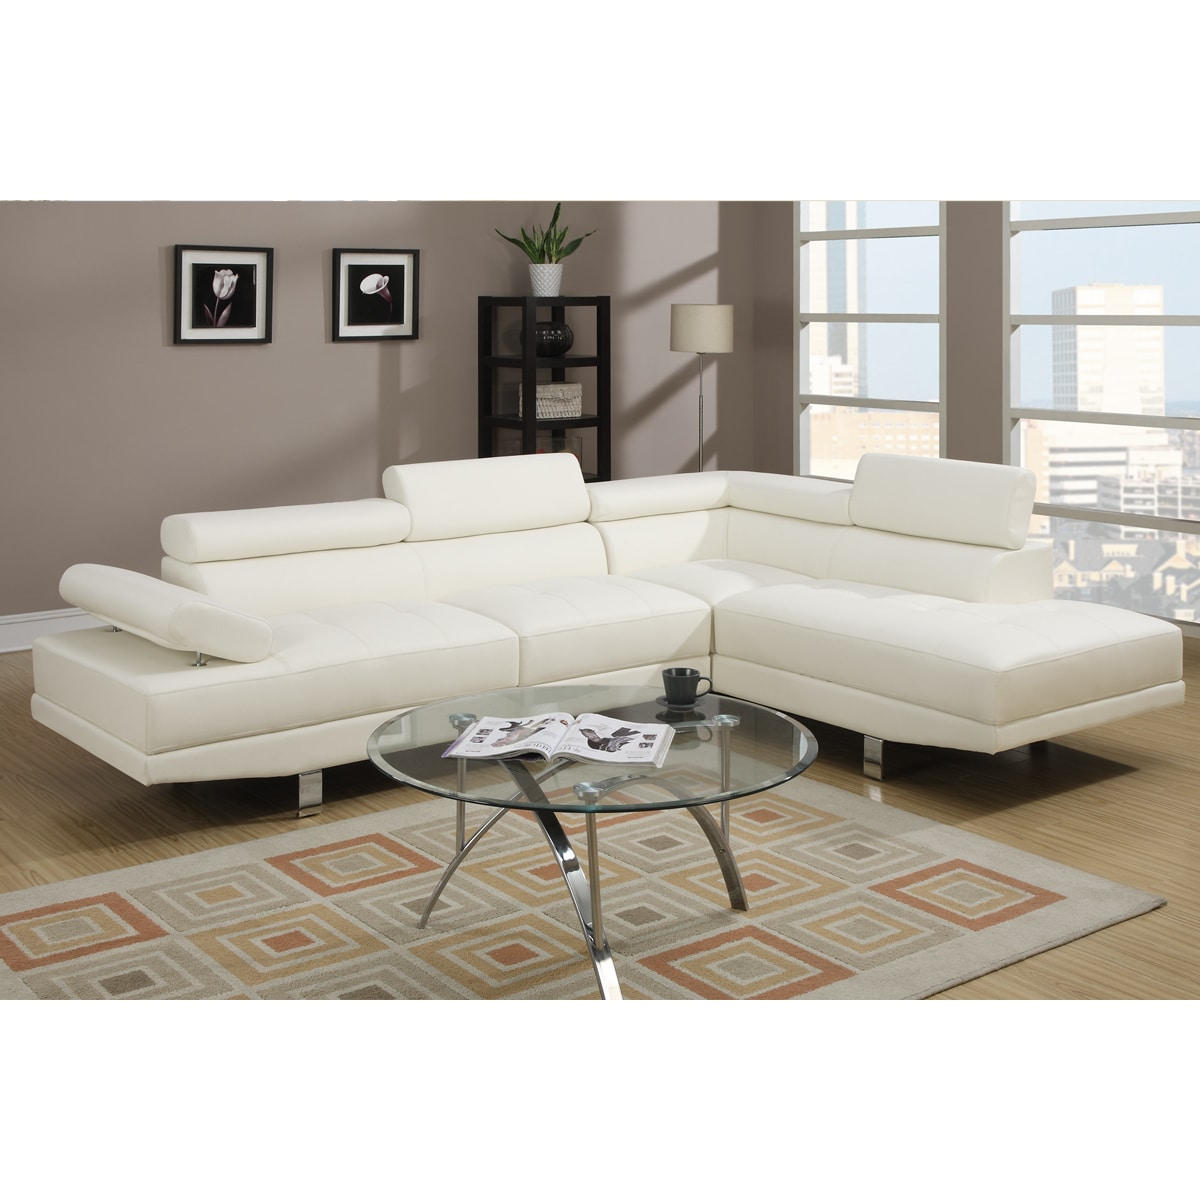 Shop Pomorie White Faux Leather Sectional Sofa Set - Free Shipping ...